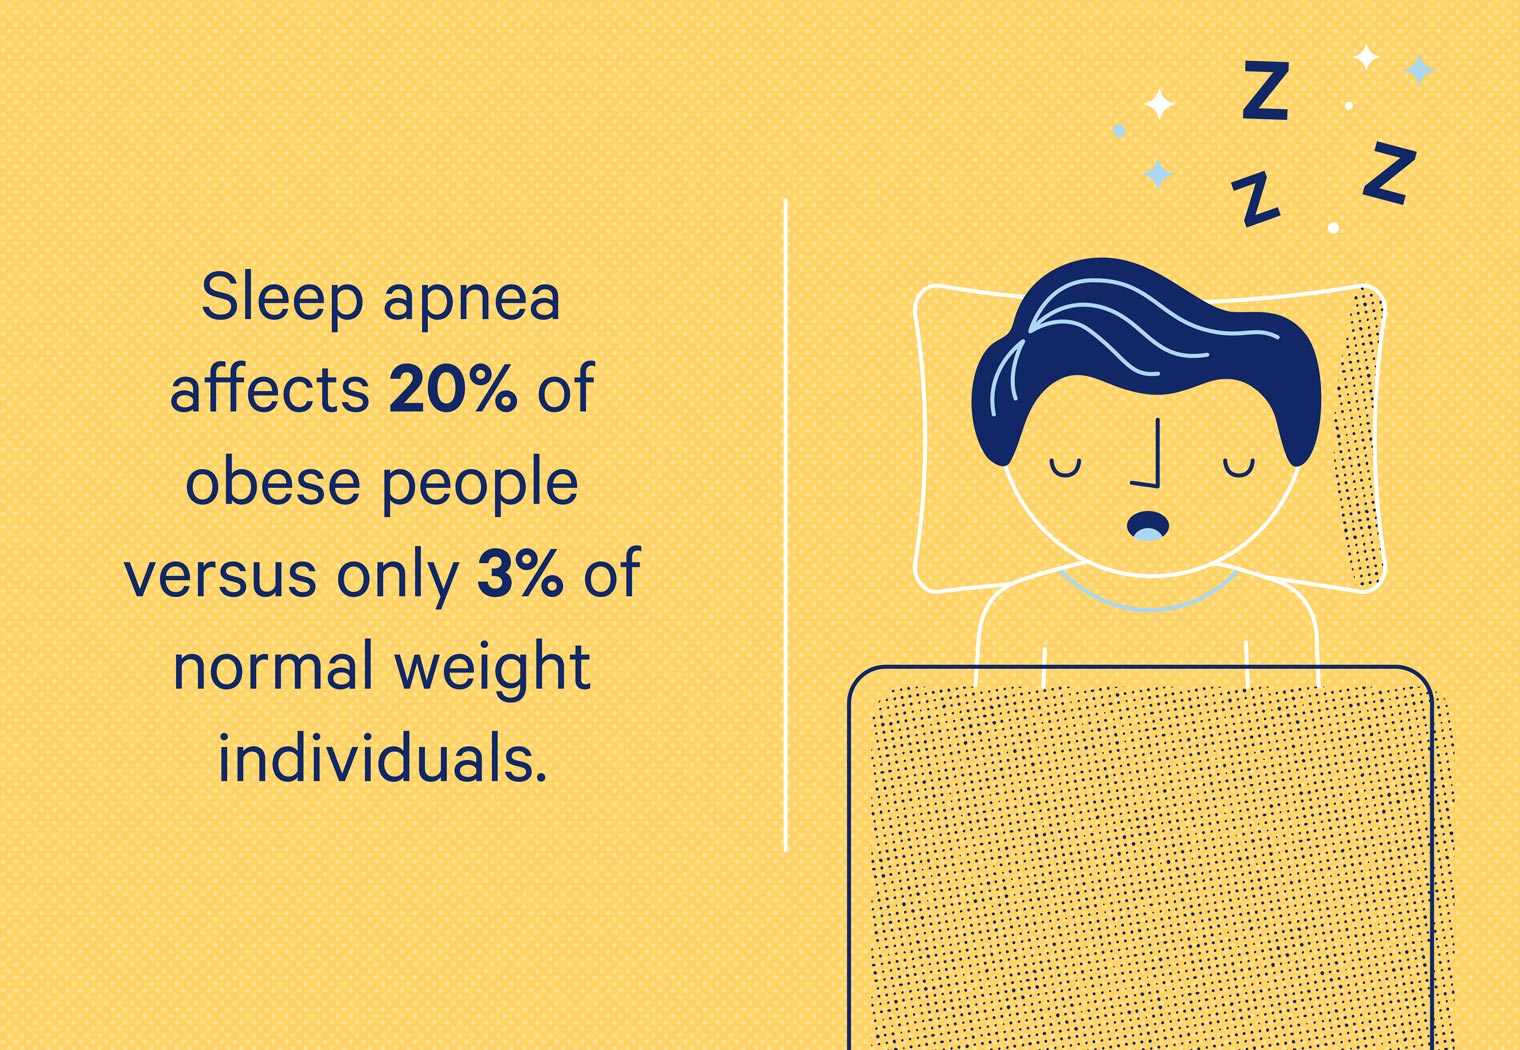 Above average weight people are 17% more likely to be affected by sleep apnea than individuals with a normal weight.